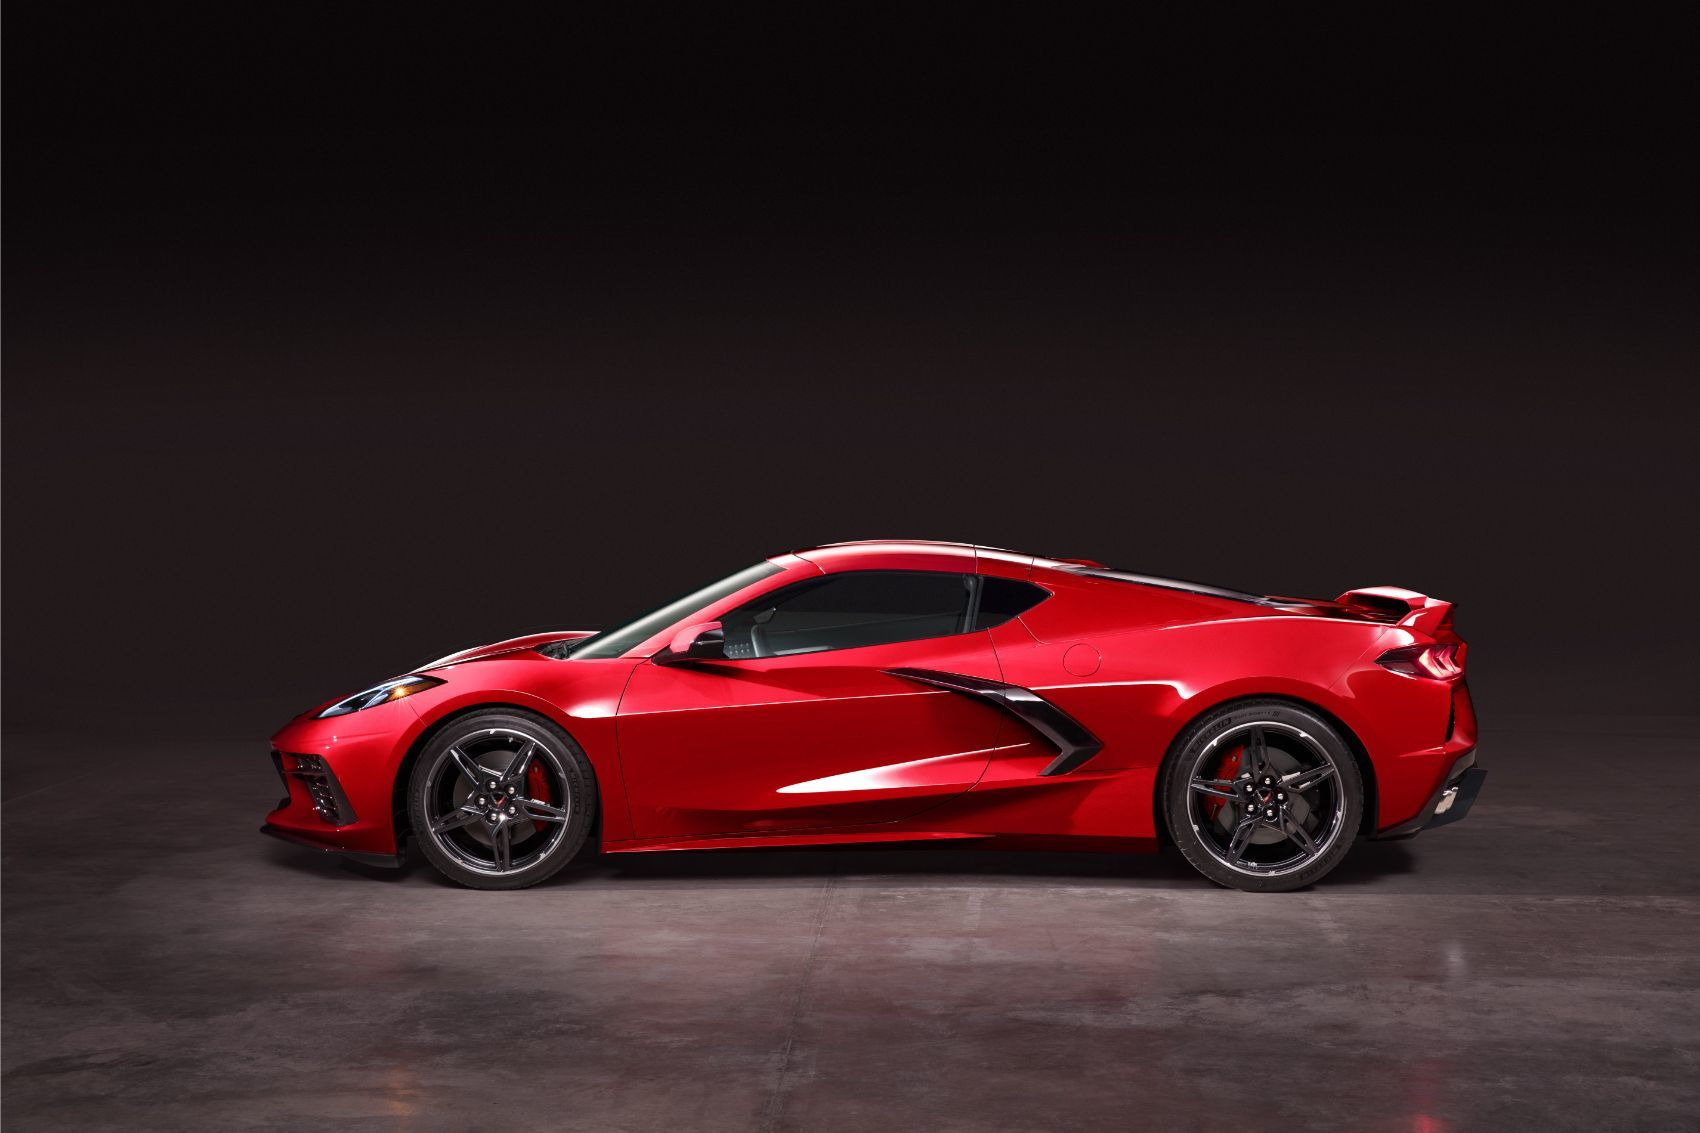 2020 Chevrolet Corvette Stingray 043